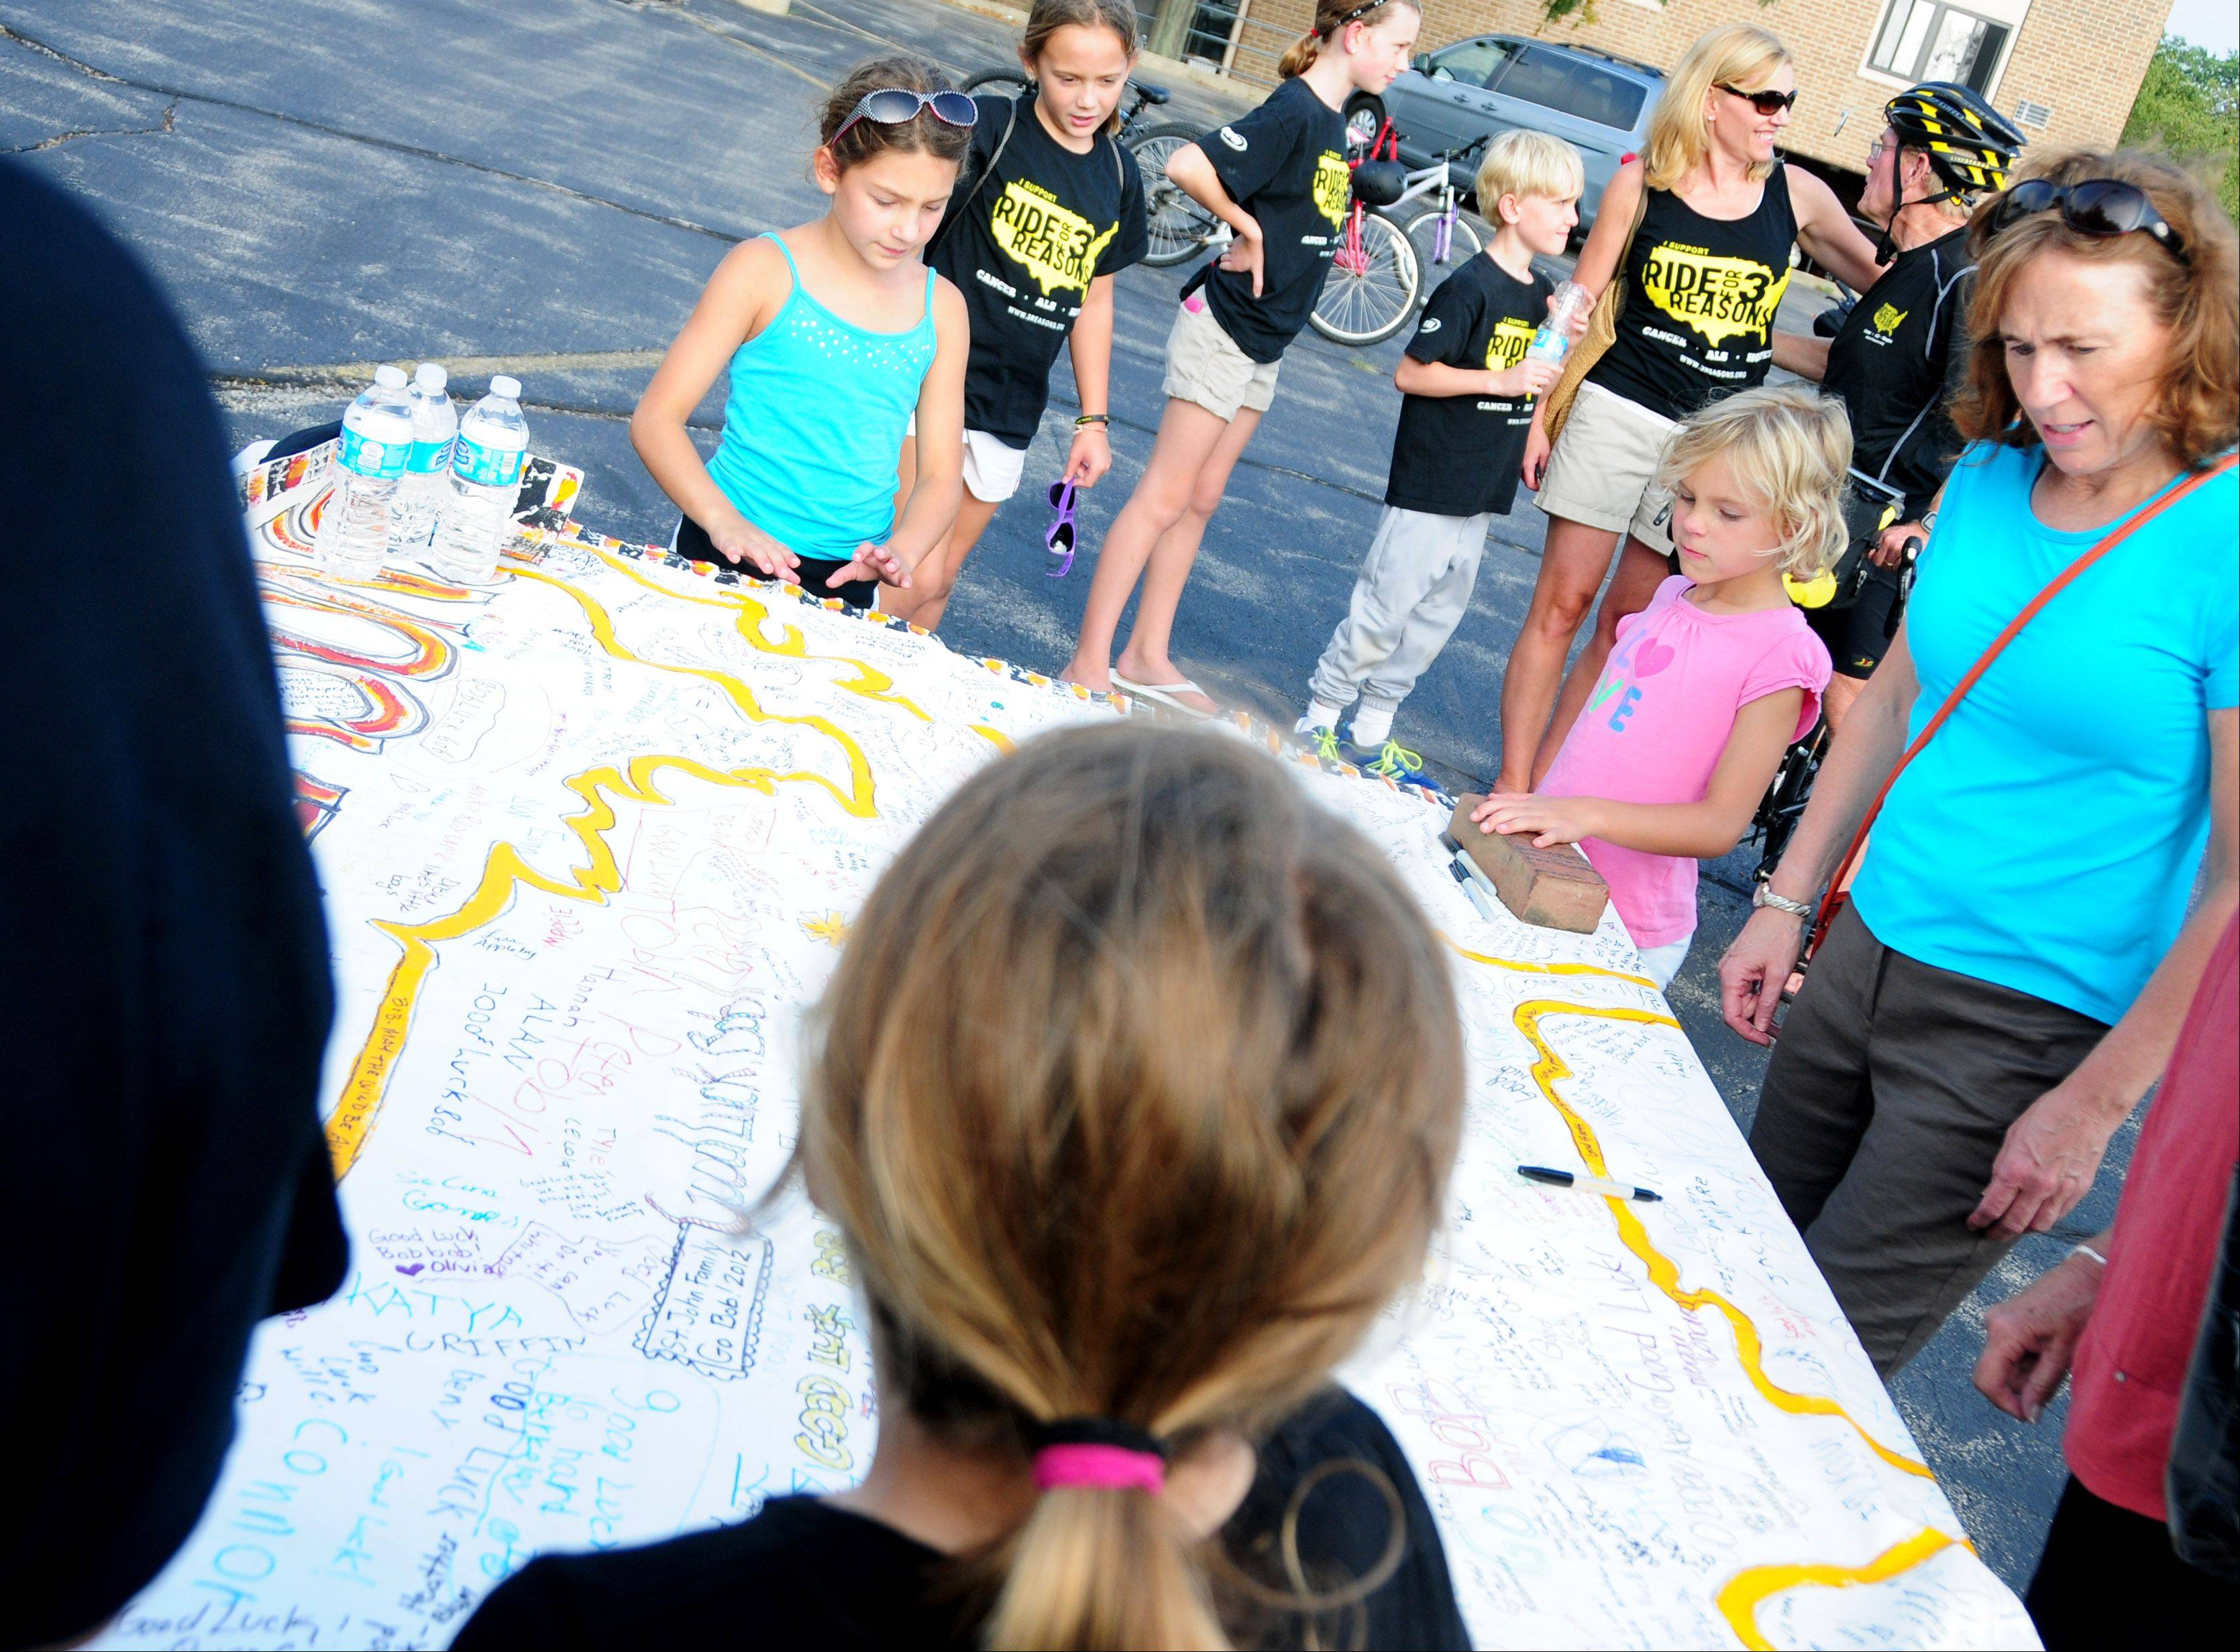 Visitors sign their names on a large map of the Ride for 3 Reasons route at a send-off party Sunday for Barrington resident Bob Lee, 70. Lee is riding his bike around the perimeter of the United States to raise money for cancer research, ALS (Lou Gehrig's disease), and hospice education.